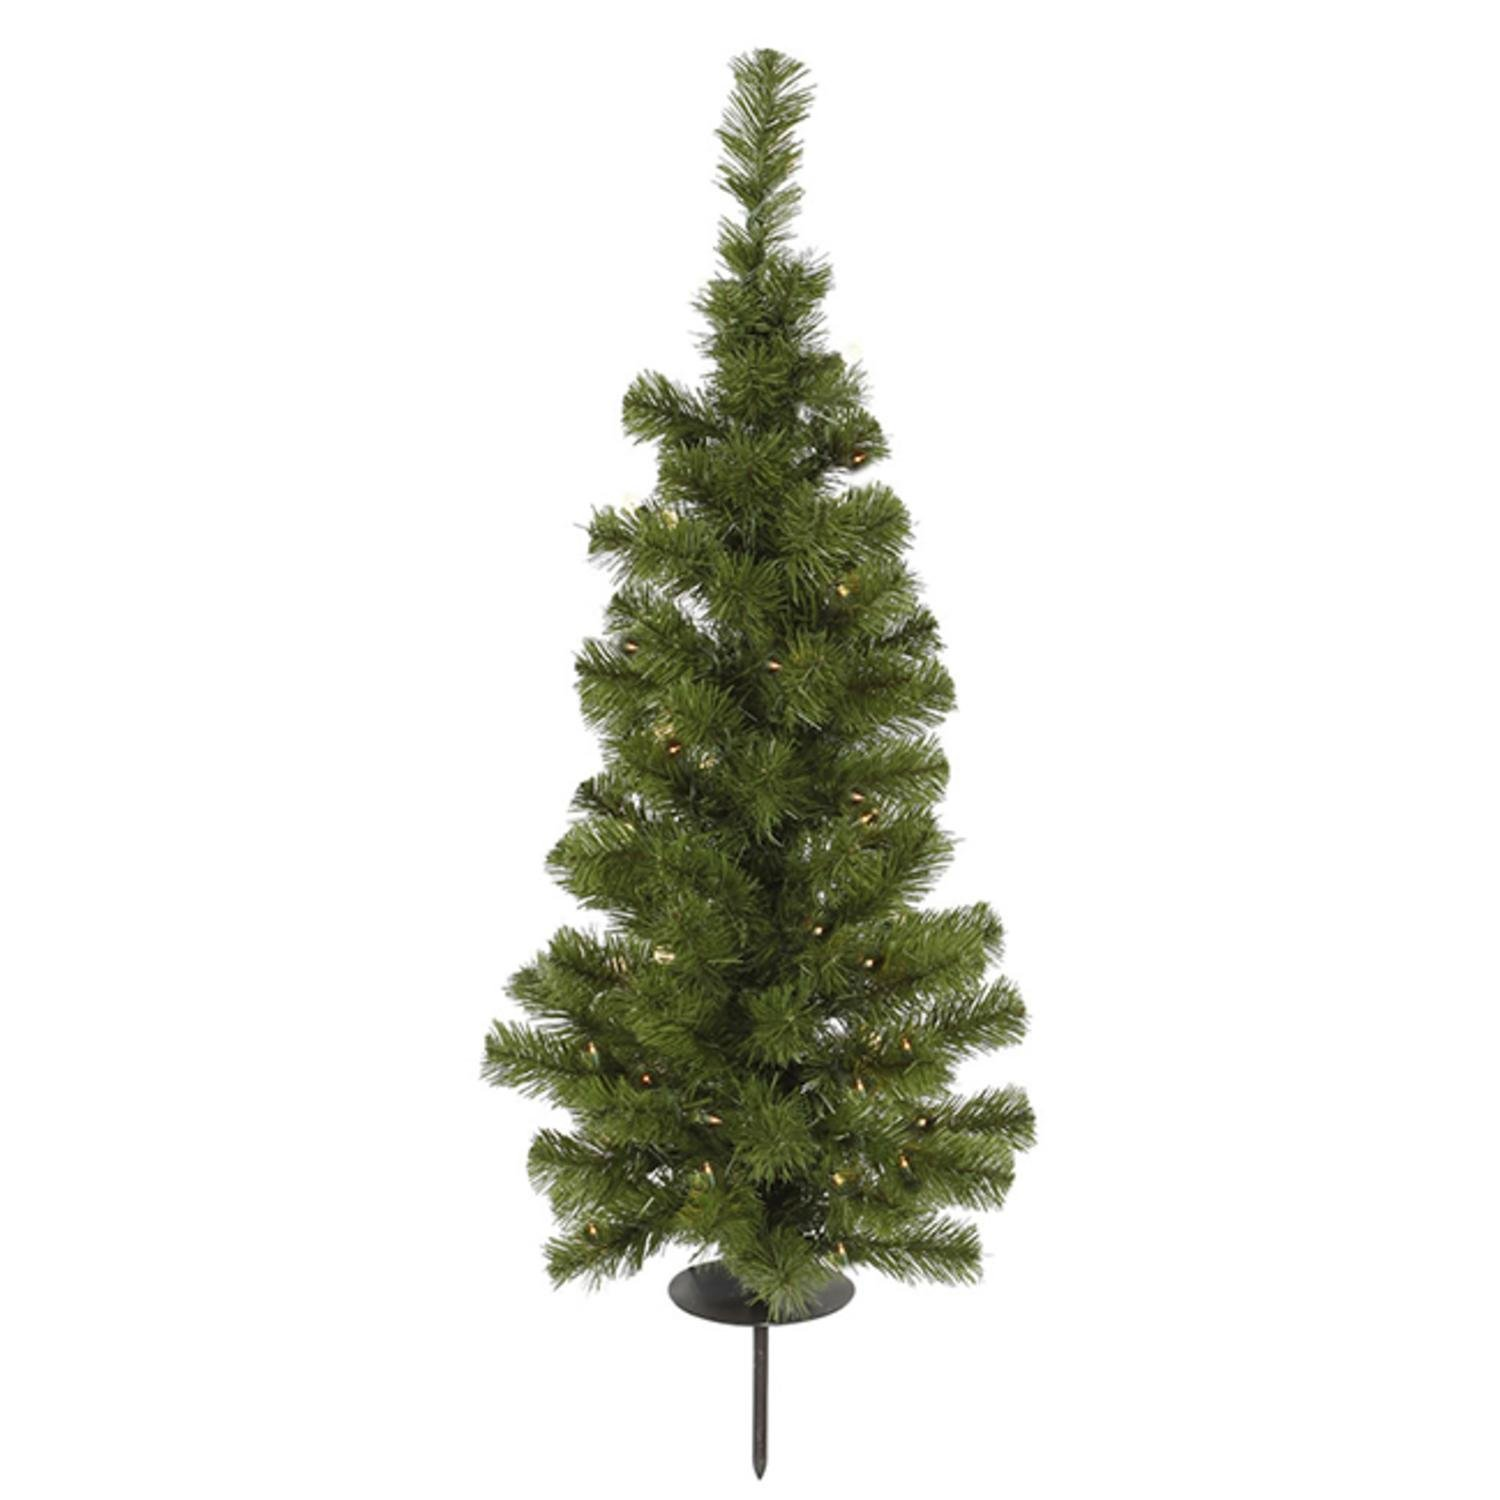 Vickerman 3' Pre-Lit Solar Powered Artificial Stake Christmas Tree - Clear LED Lights